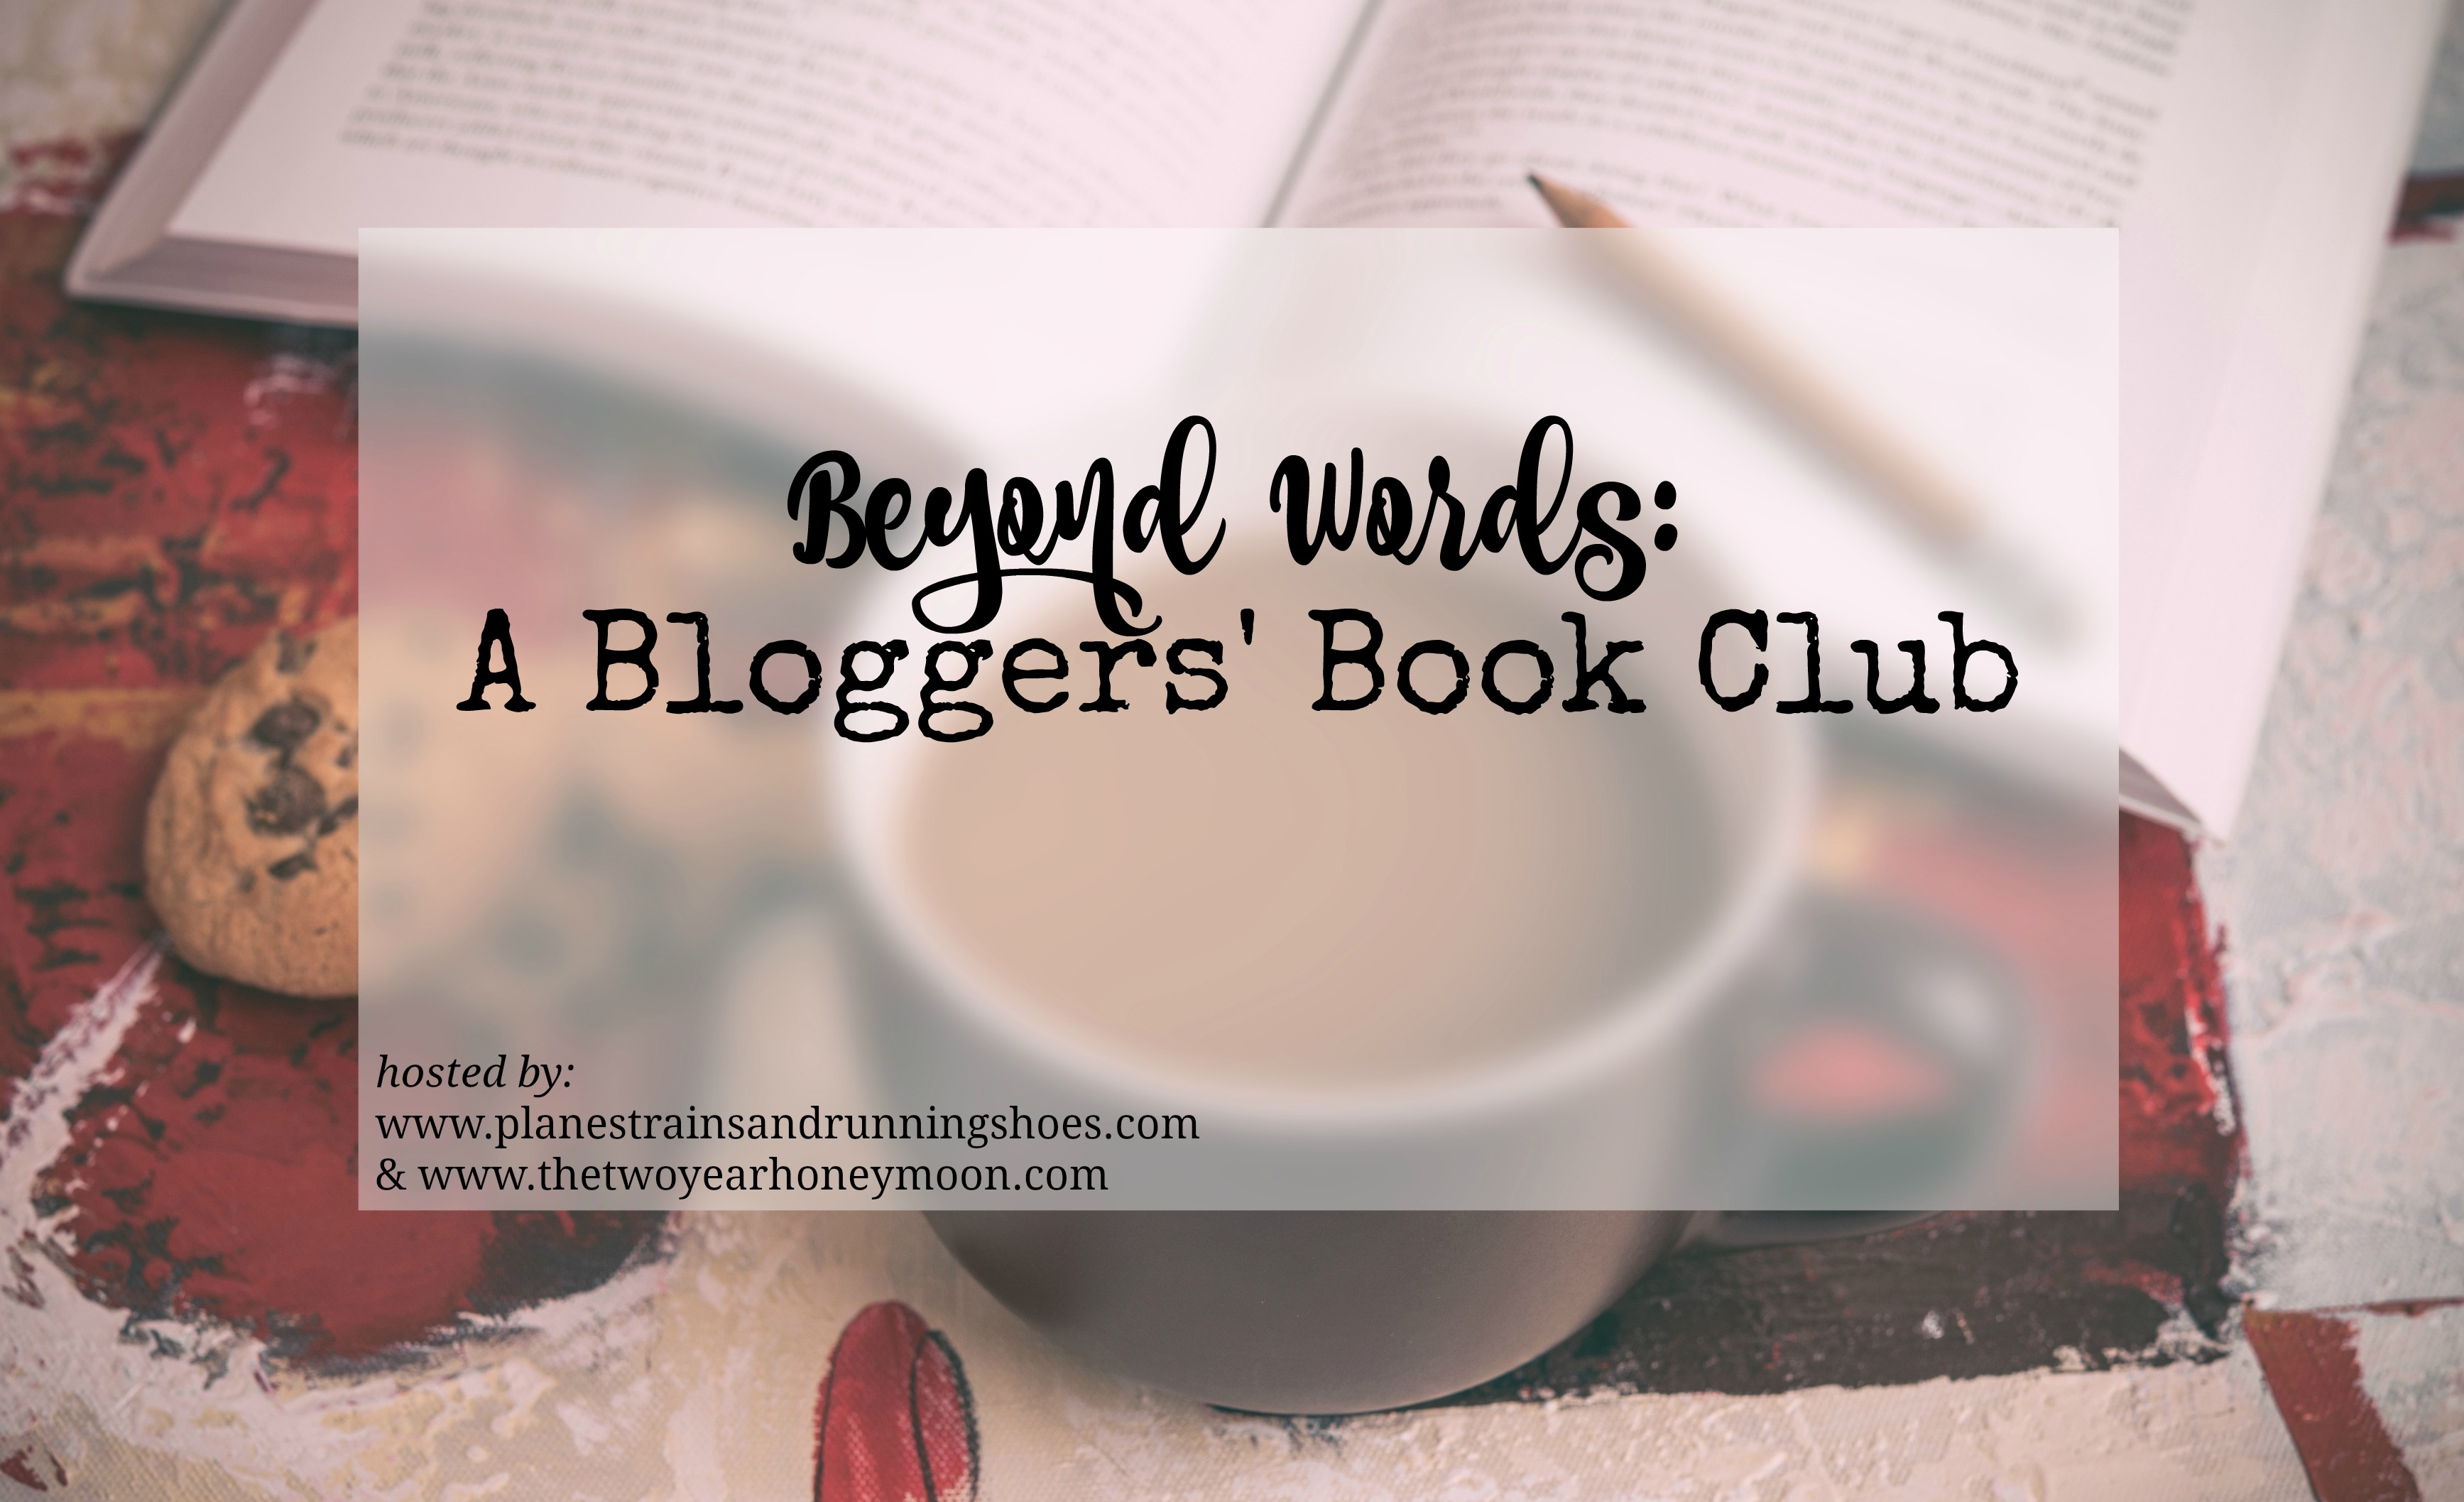 beyond words a blogger's book club copy